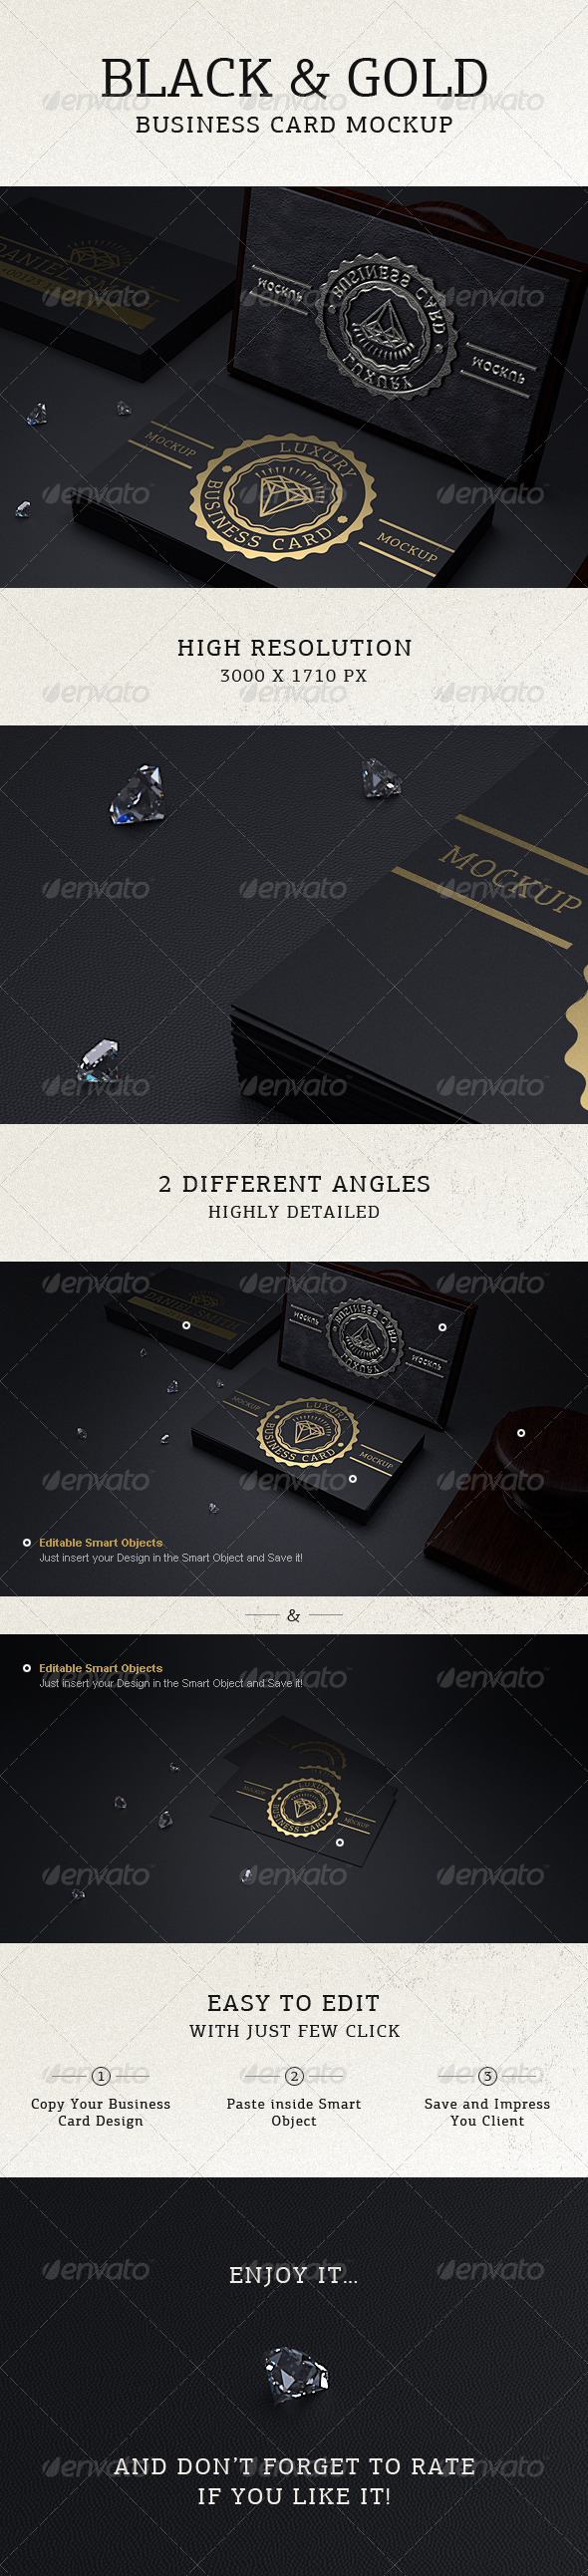 Photorealistic black gold business card mock up by ayashi photorealistic black gold business card mock up reheart Images